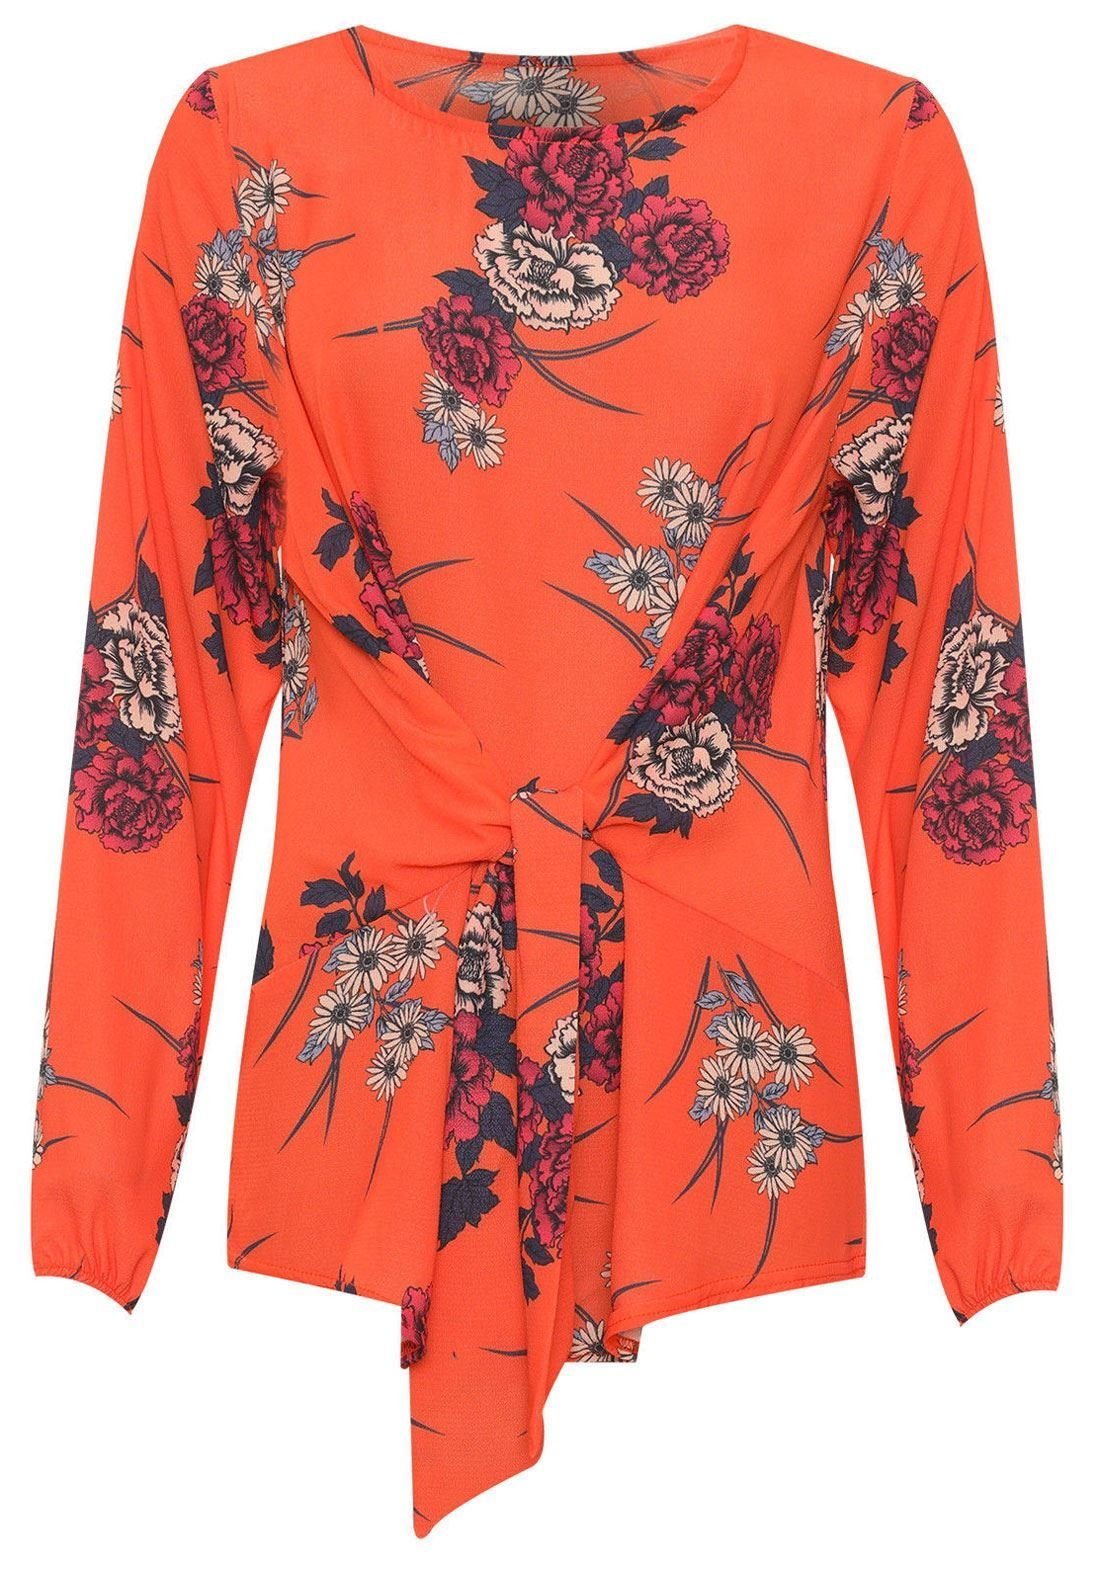 REAL LIFE FASHION LTD Ladies Stunning Floral Print Crepe Long Sleeve Blouse Womens Tied Front Top#(Burnt Orange Floral Print Crepe Top#US 24-26#Womens)